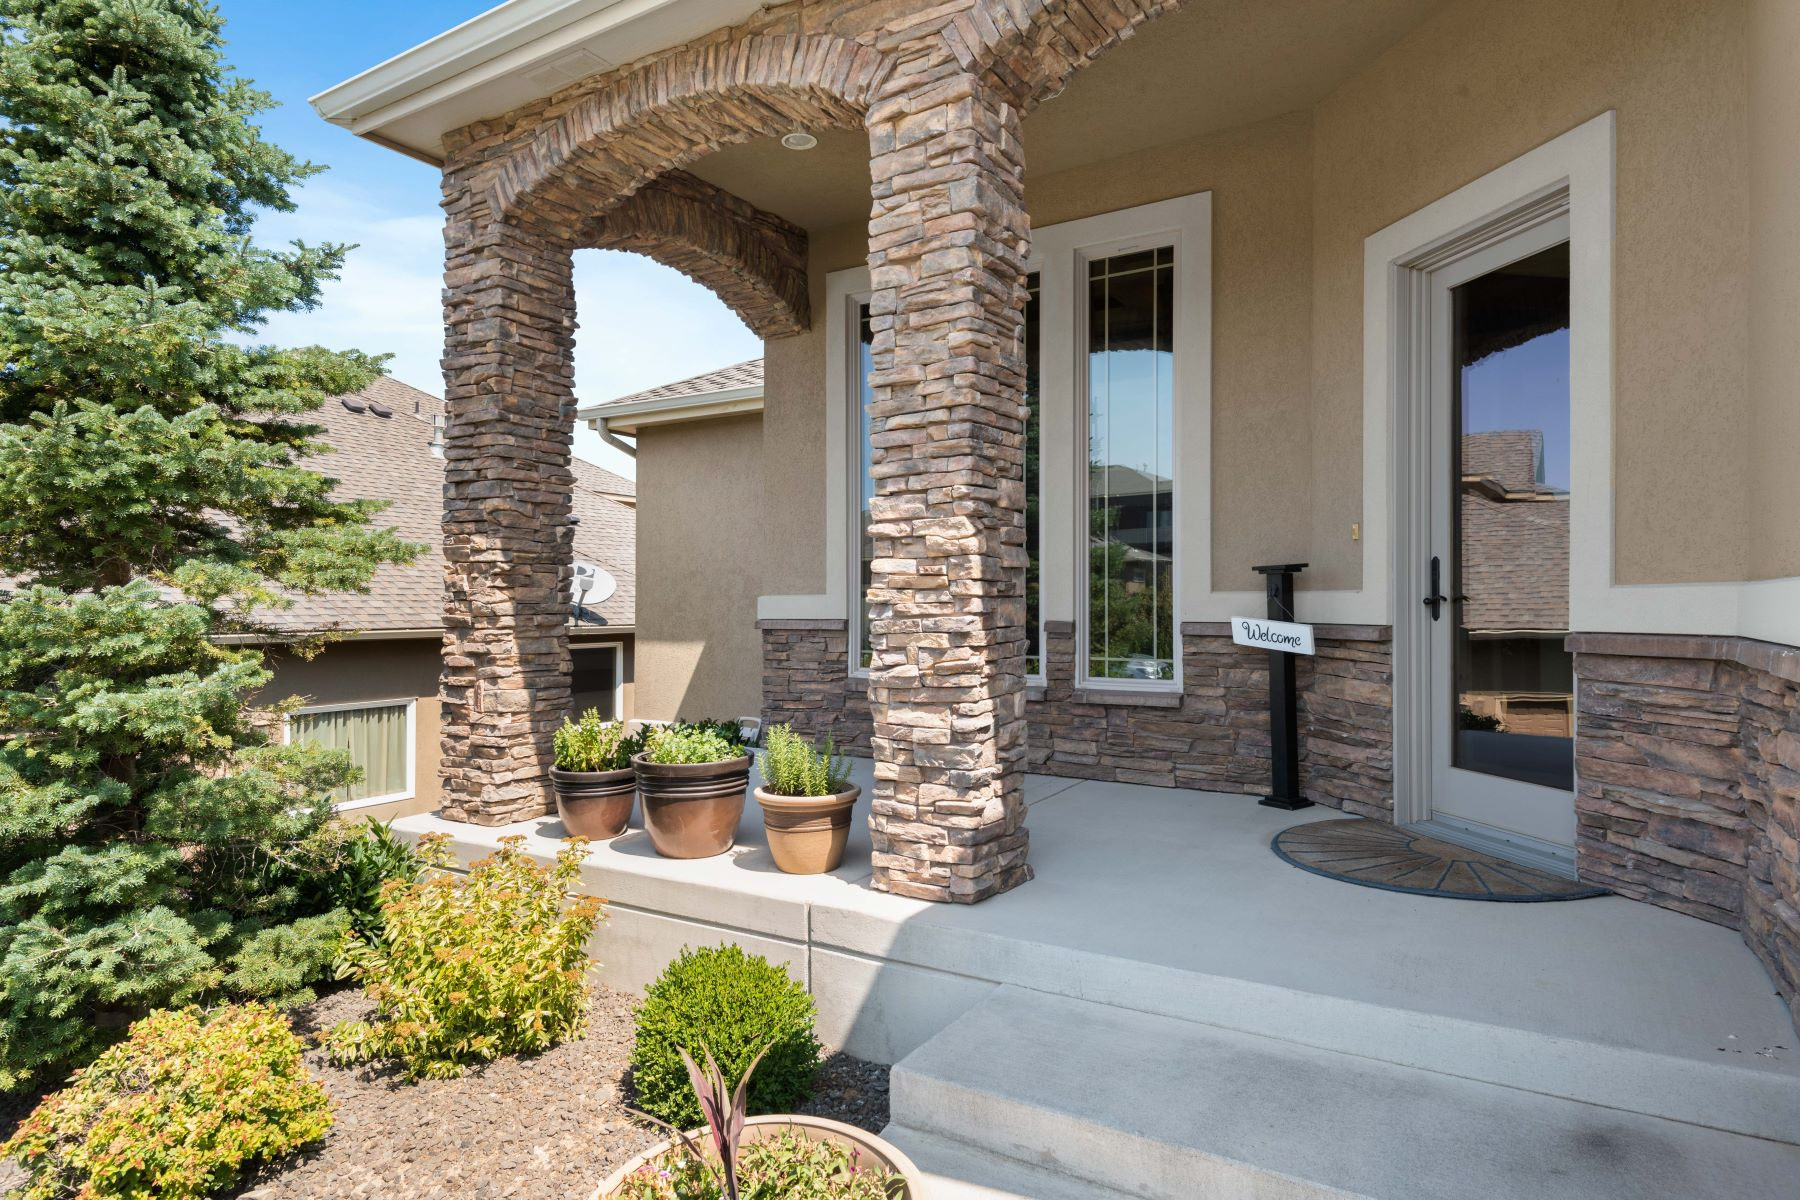 Single Family Homes for Sale at Gorgeous Views Overlook Canyon Lakes and the City 3806 West 47th Avenue Kennewick, Washington 99337 United States